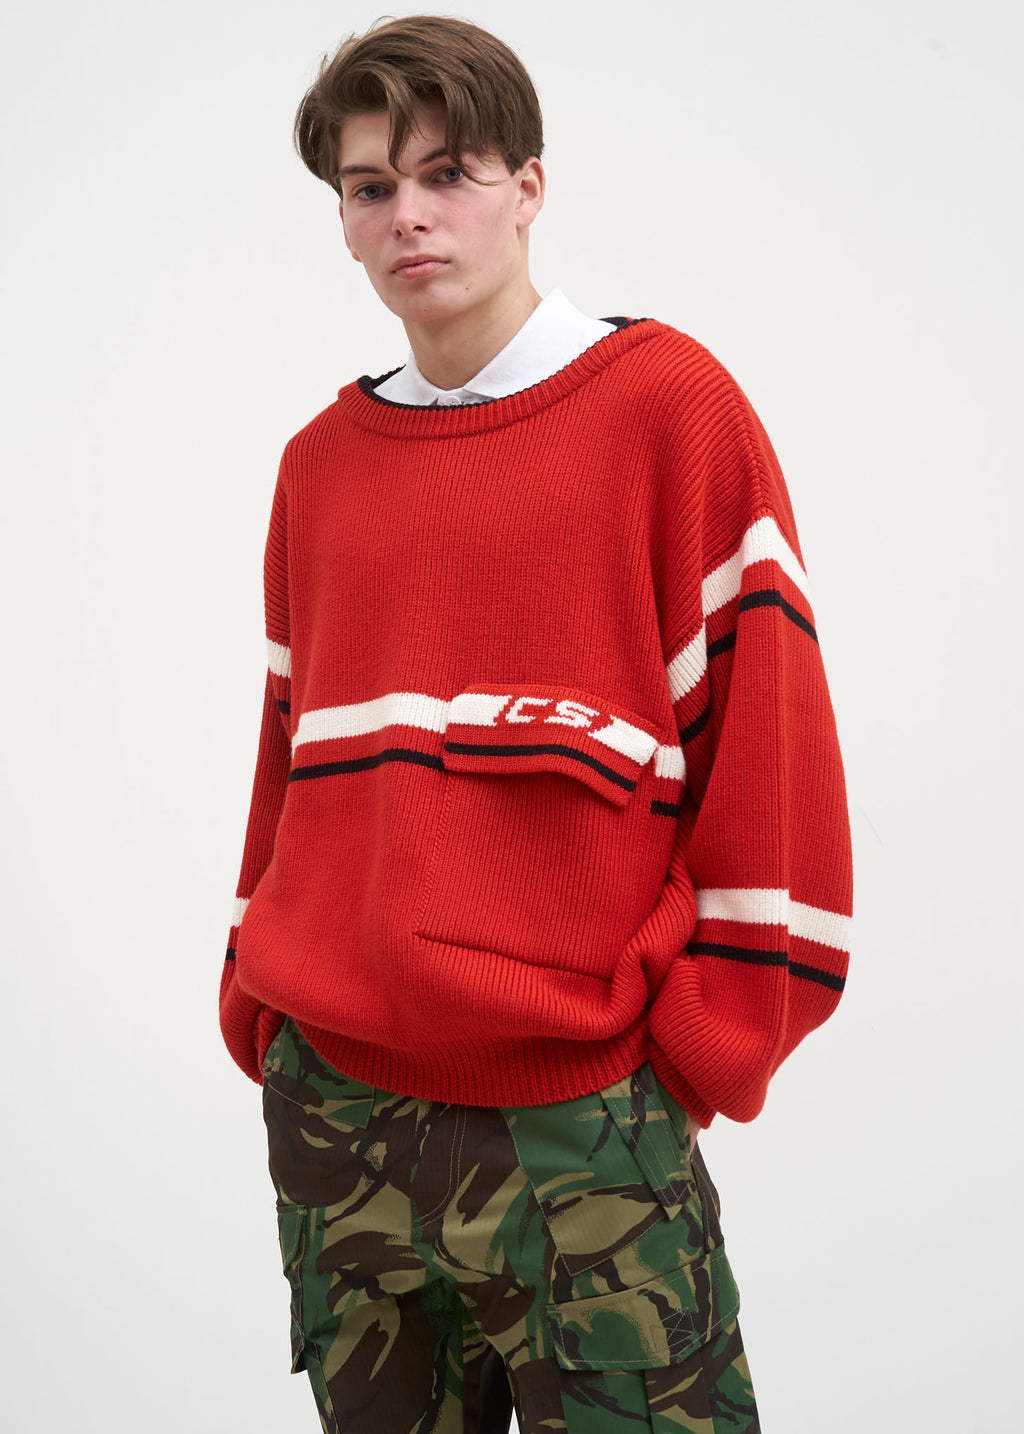 Cmmn Swdn, Red Tomek Knit Sweater, 017 Shop